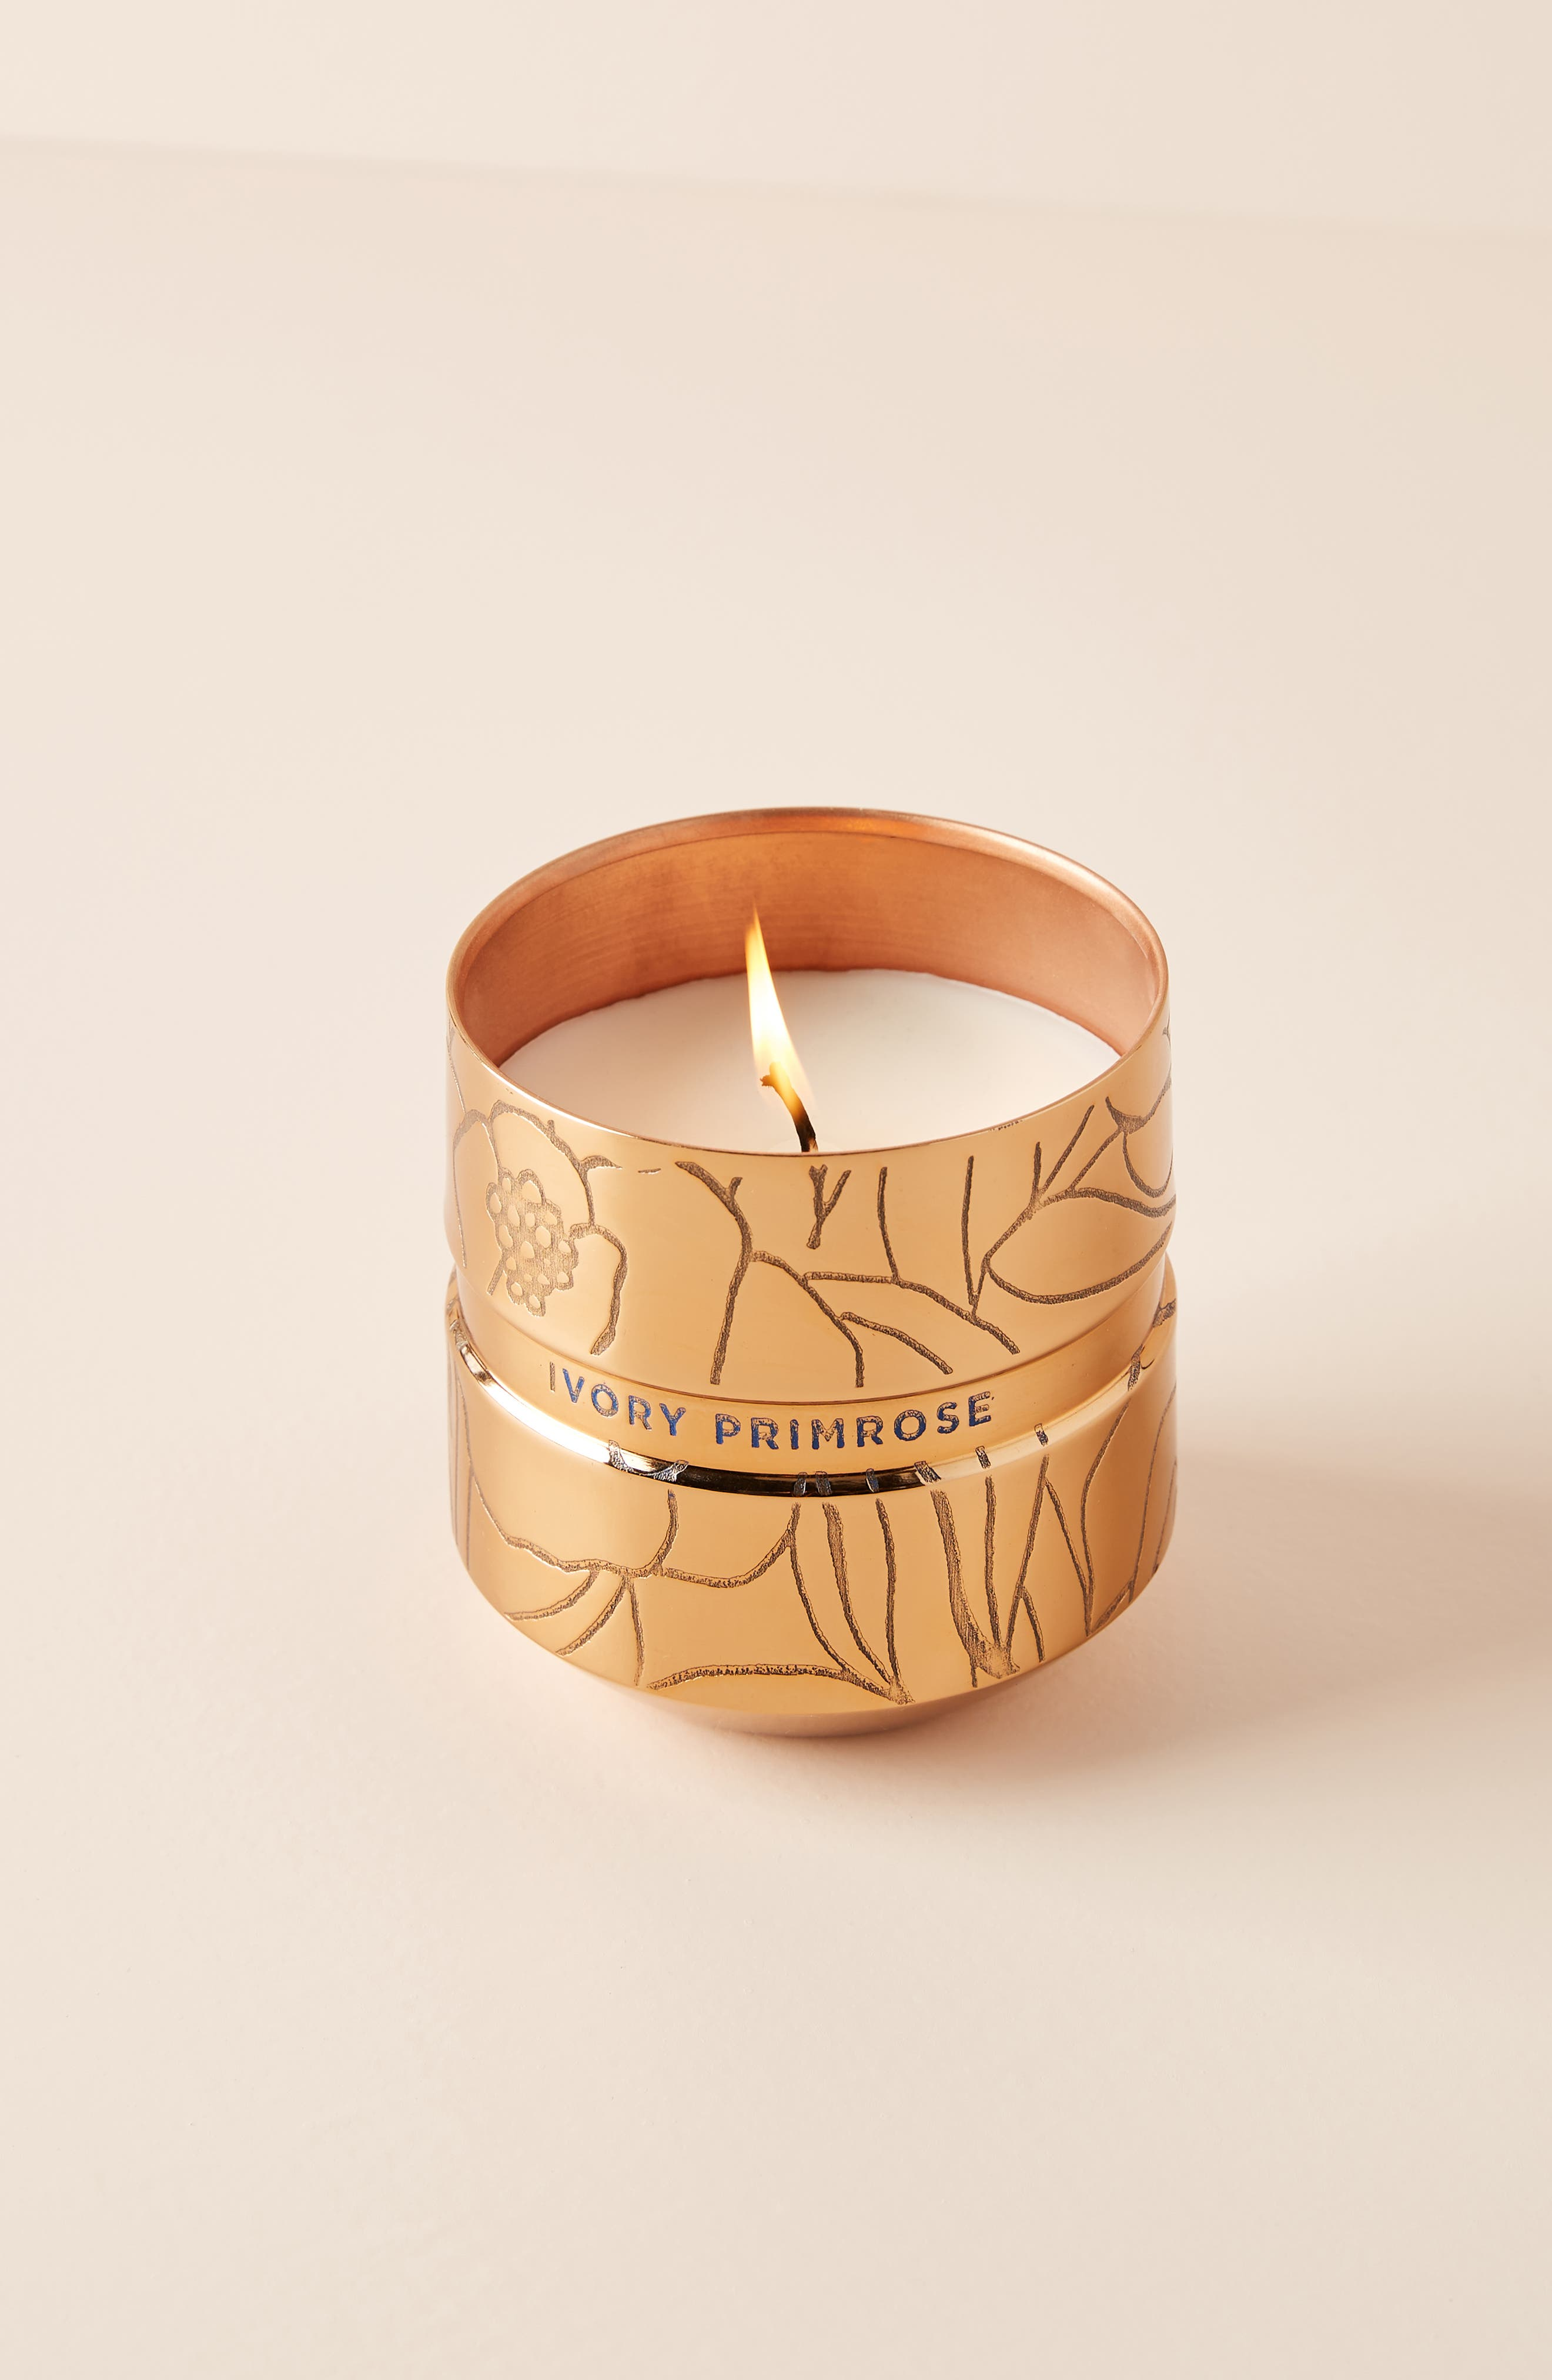 anthropologie ivory primrose flora couture candle